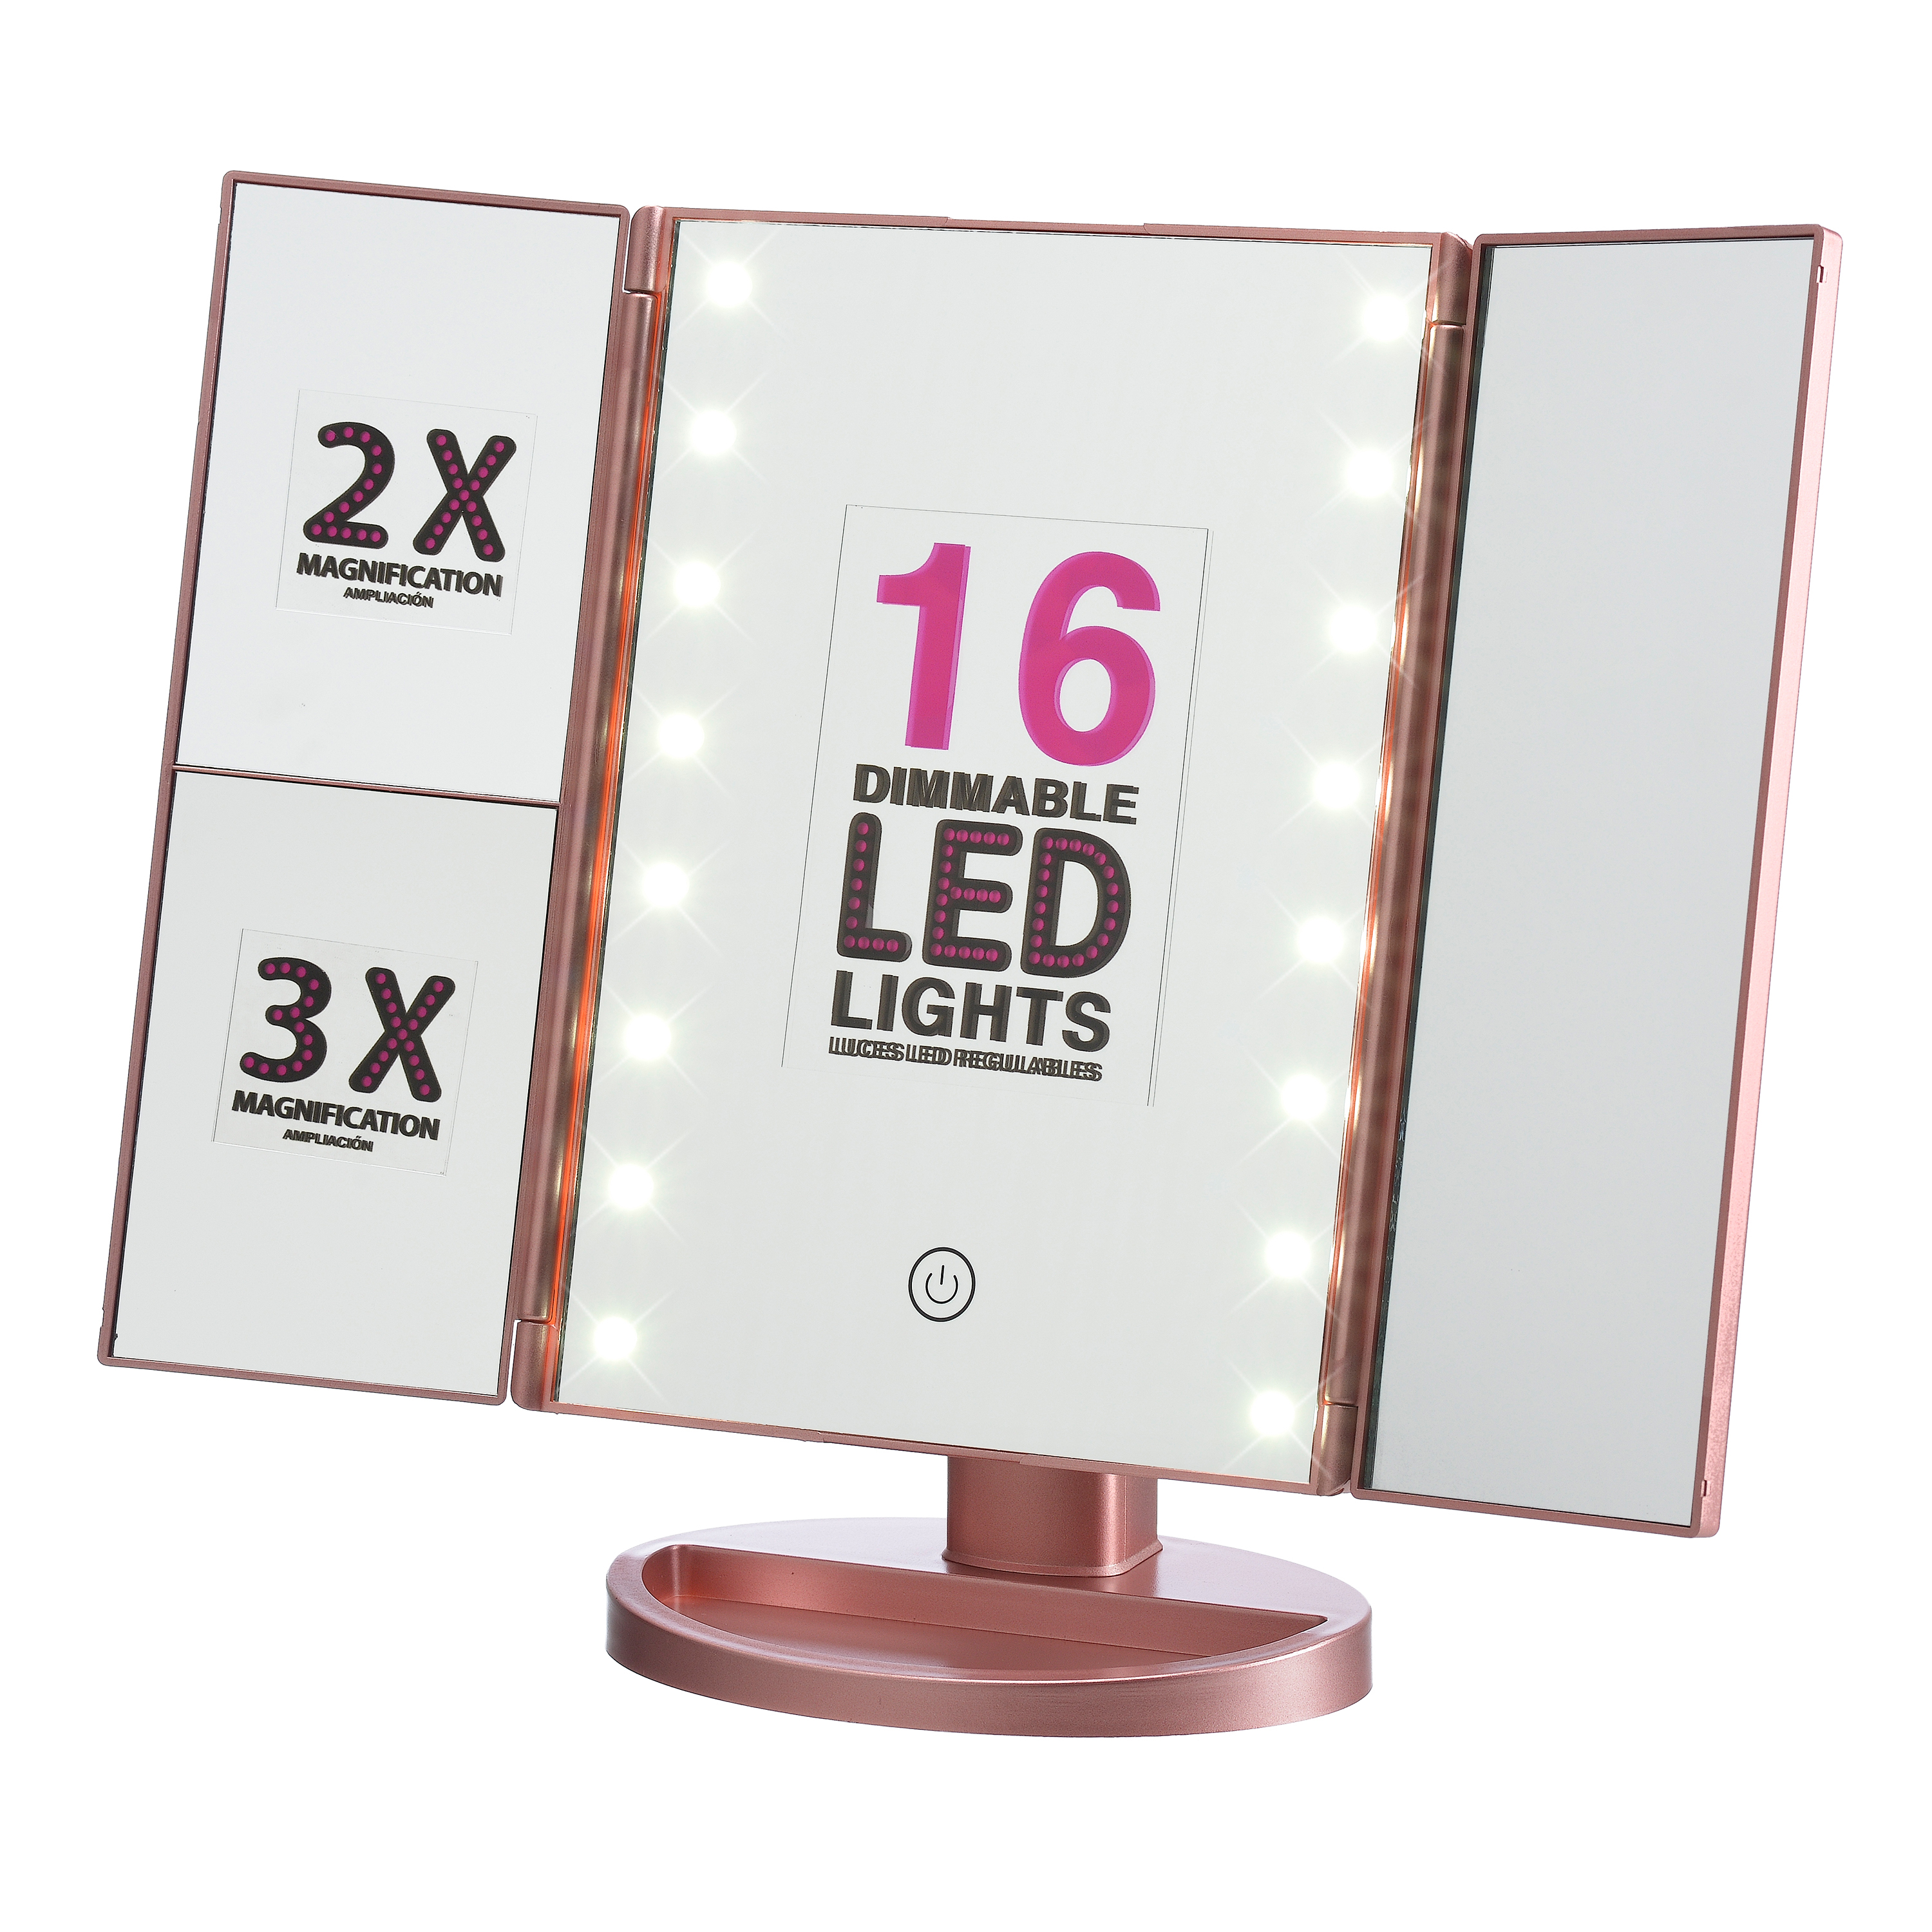 Onyx Makeup Mirror ($26 Value) with Dimmable LED Lights, Pink